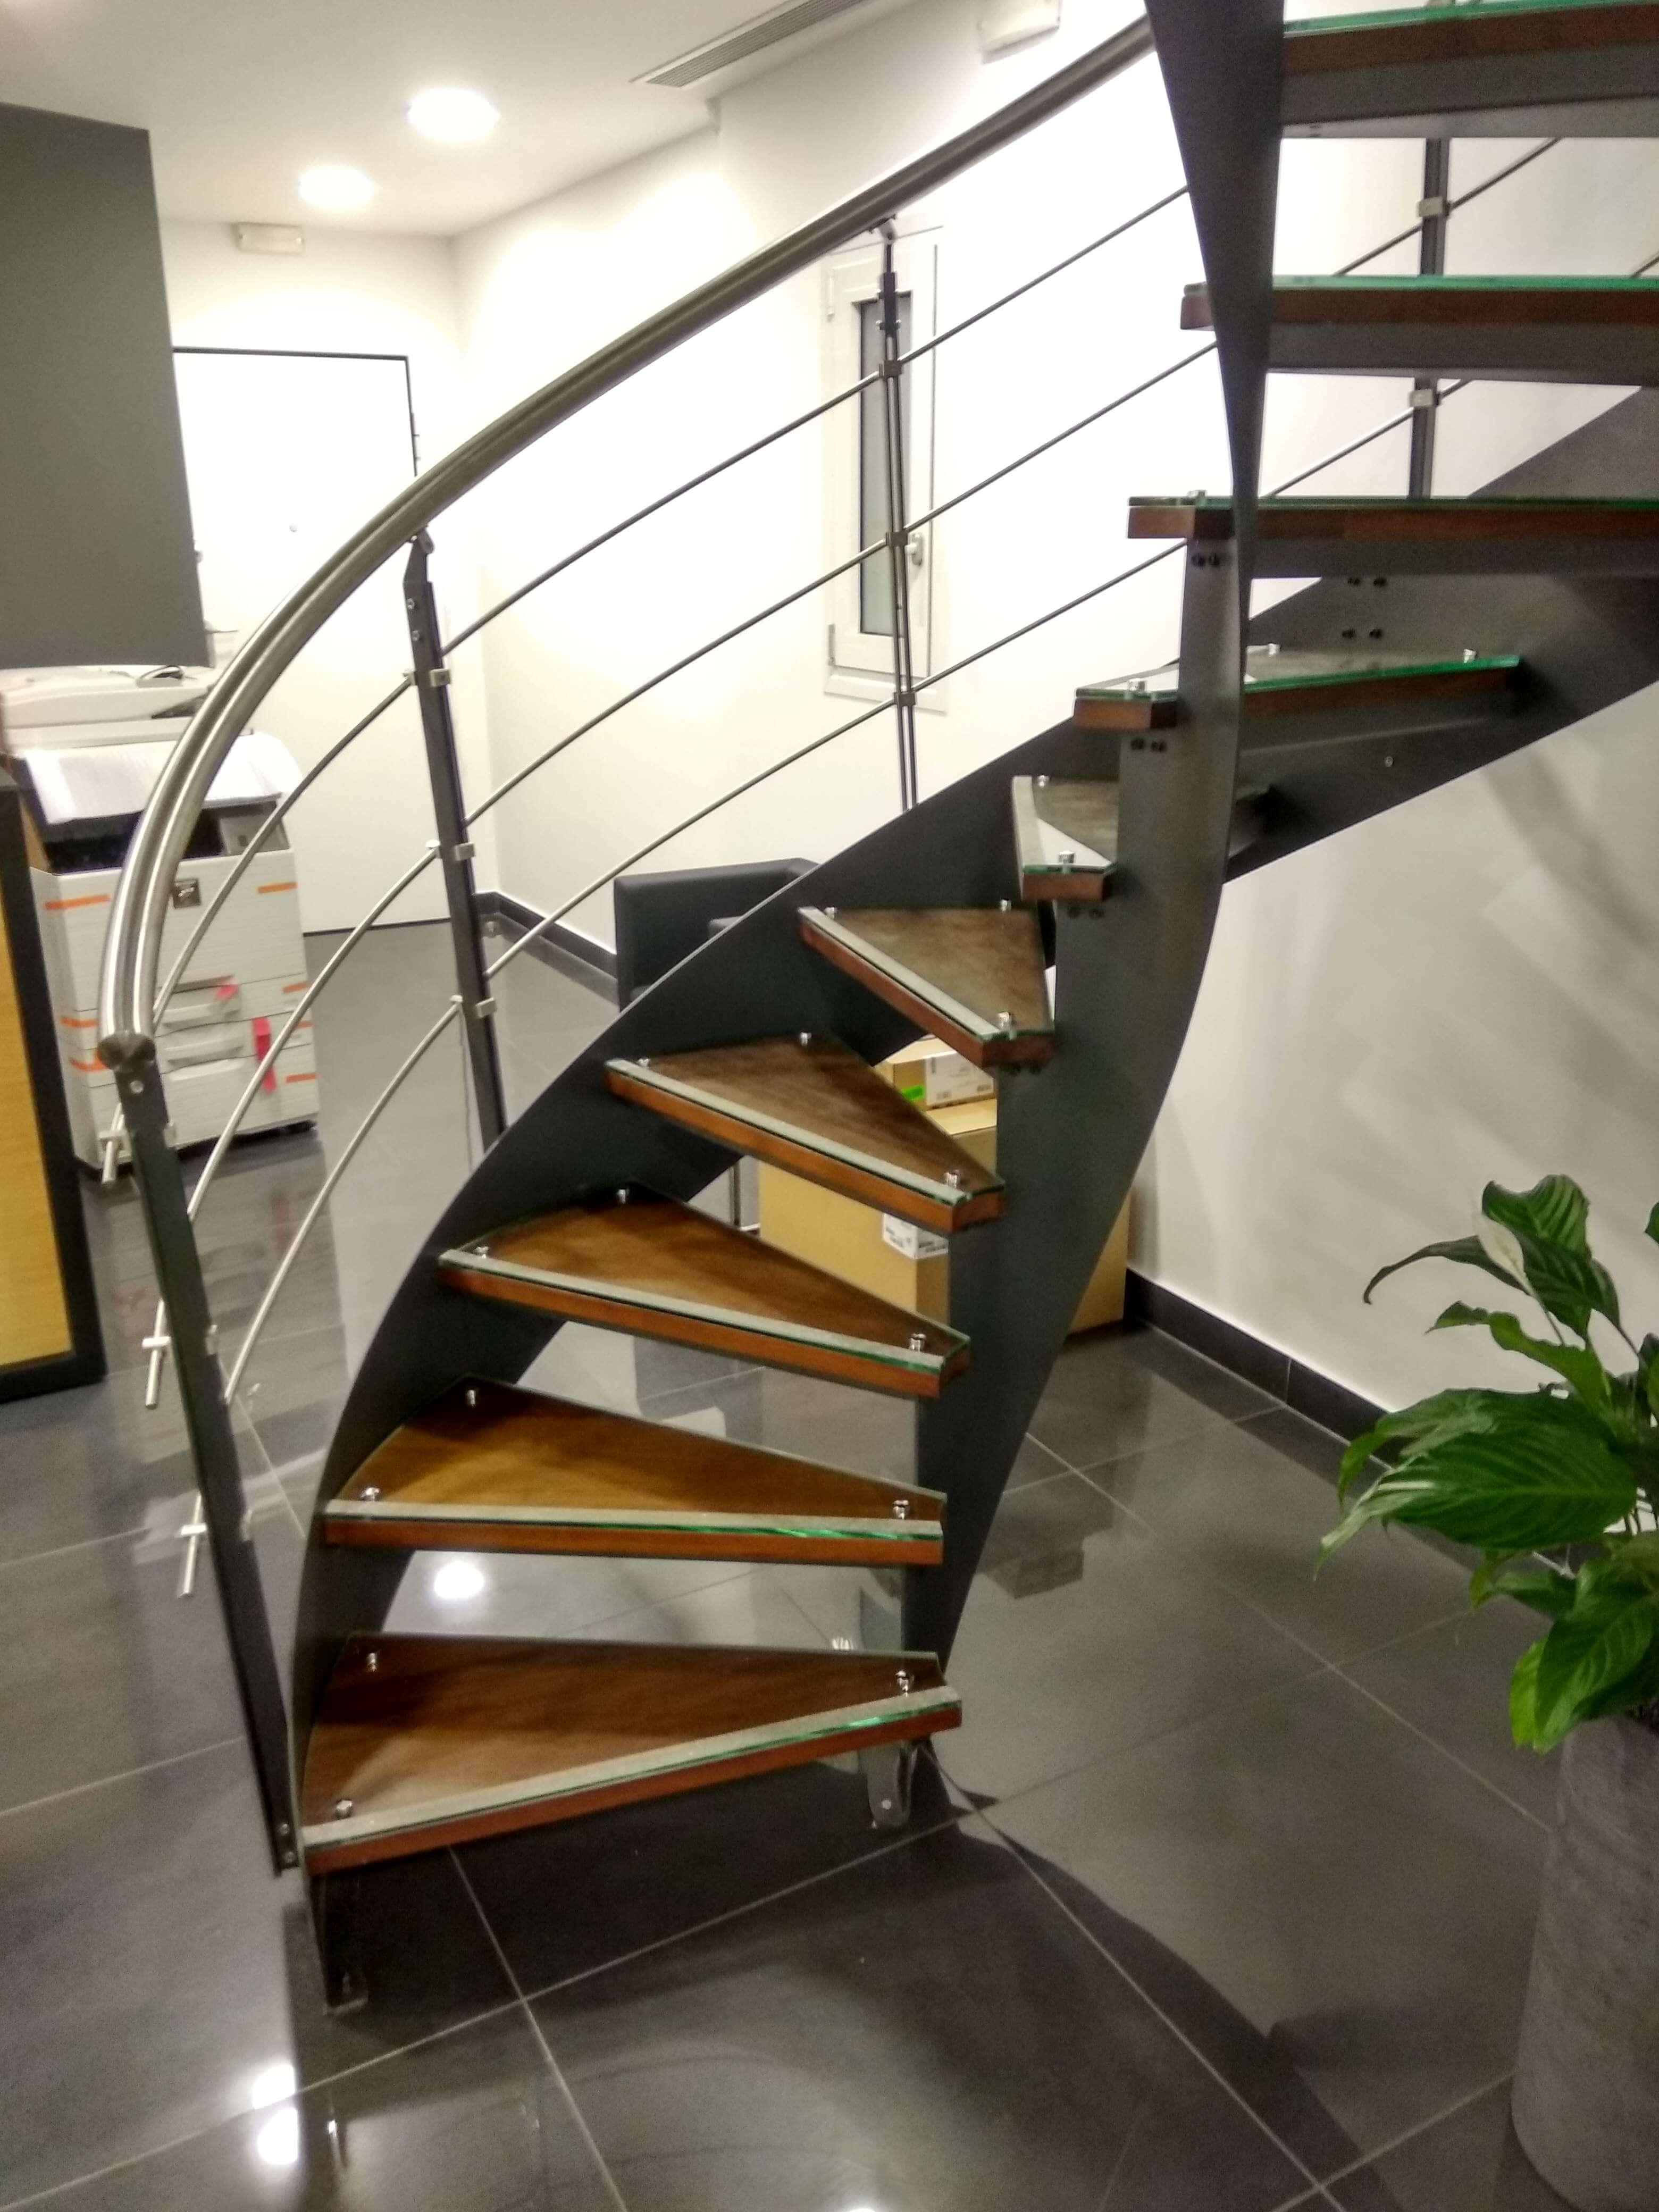 STAIR IN A WELL-KNOWN LAW FIRM